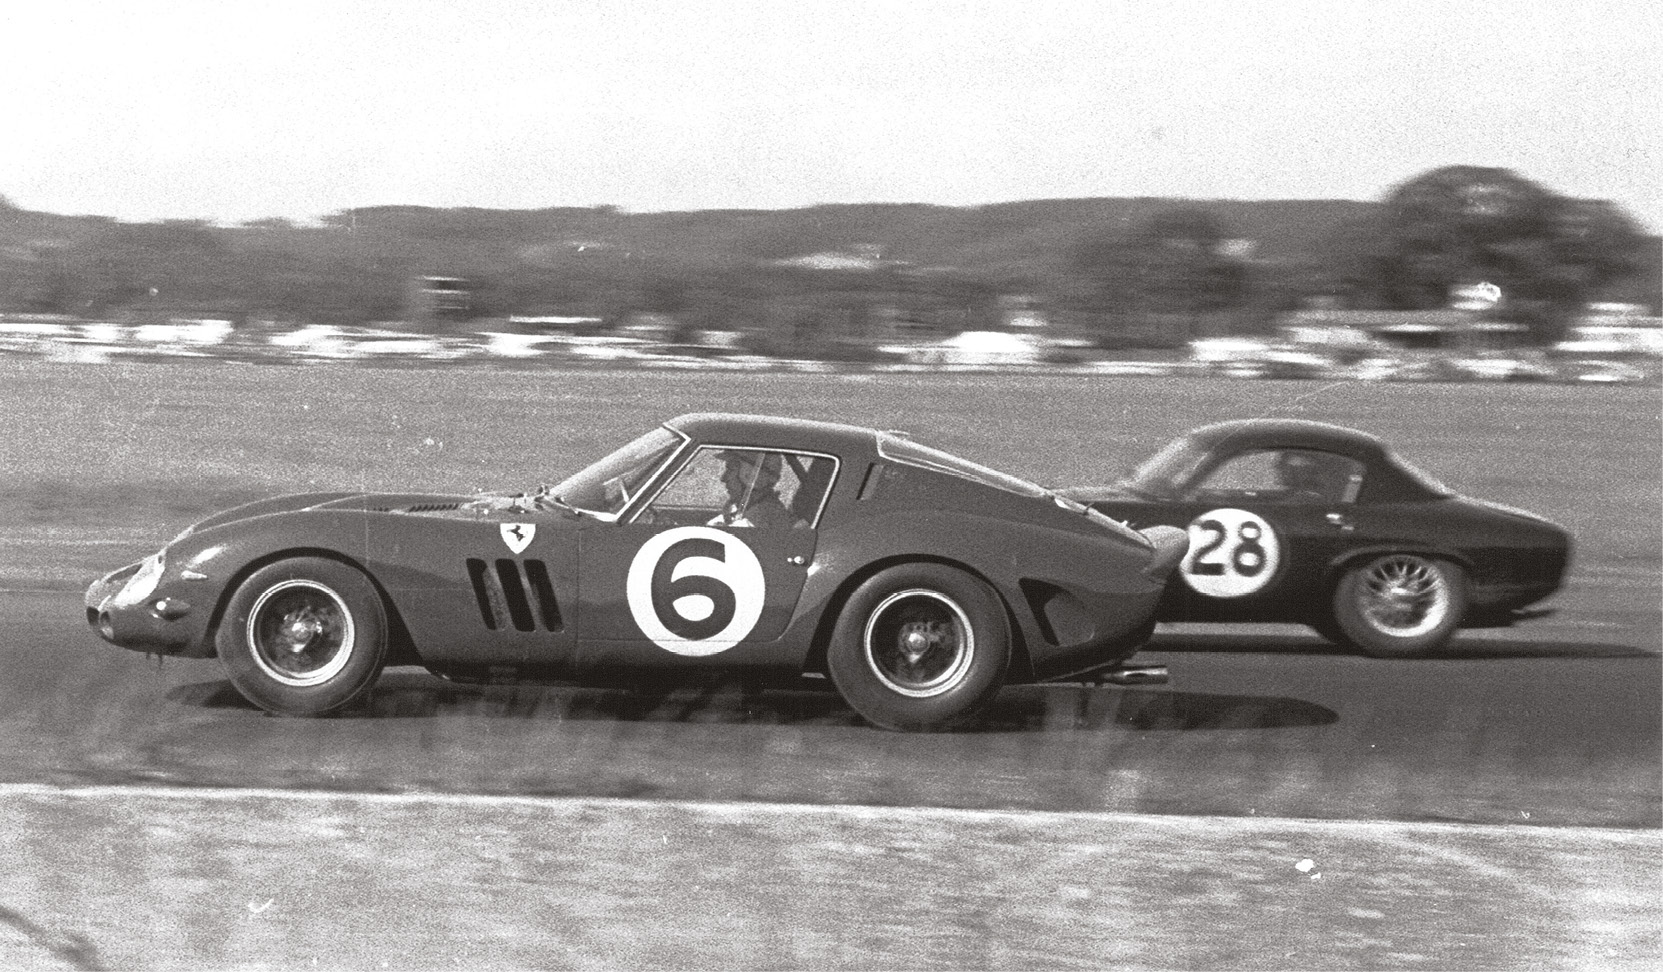 John Surtees (Ferrari 250 GTO) passes John Coundley (Lotus Elite) in the 1962 TT. Surtees might have won but for a tangle with Jim Clark